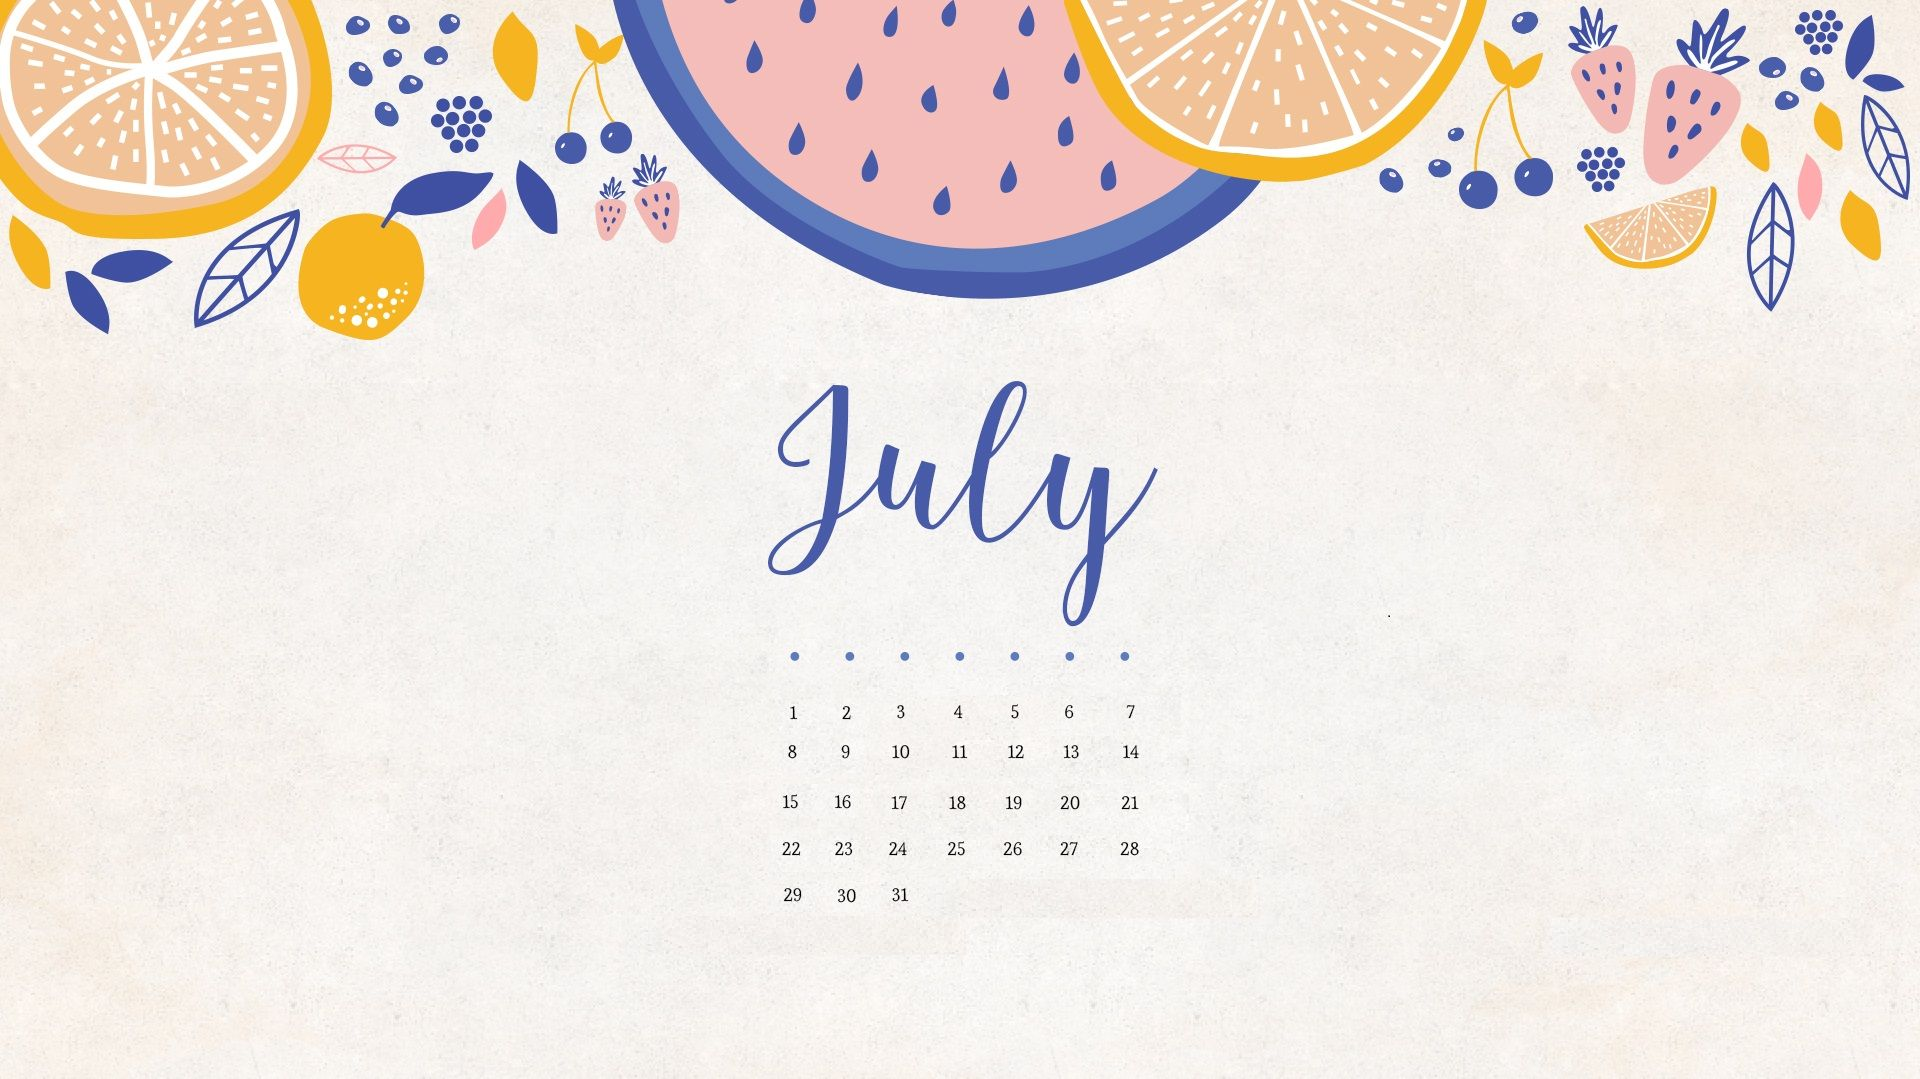 Calendar Wallpaper Originals : July calendar hd wallpapers